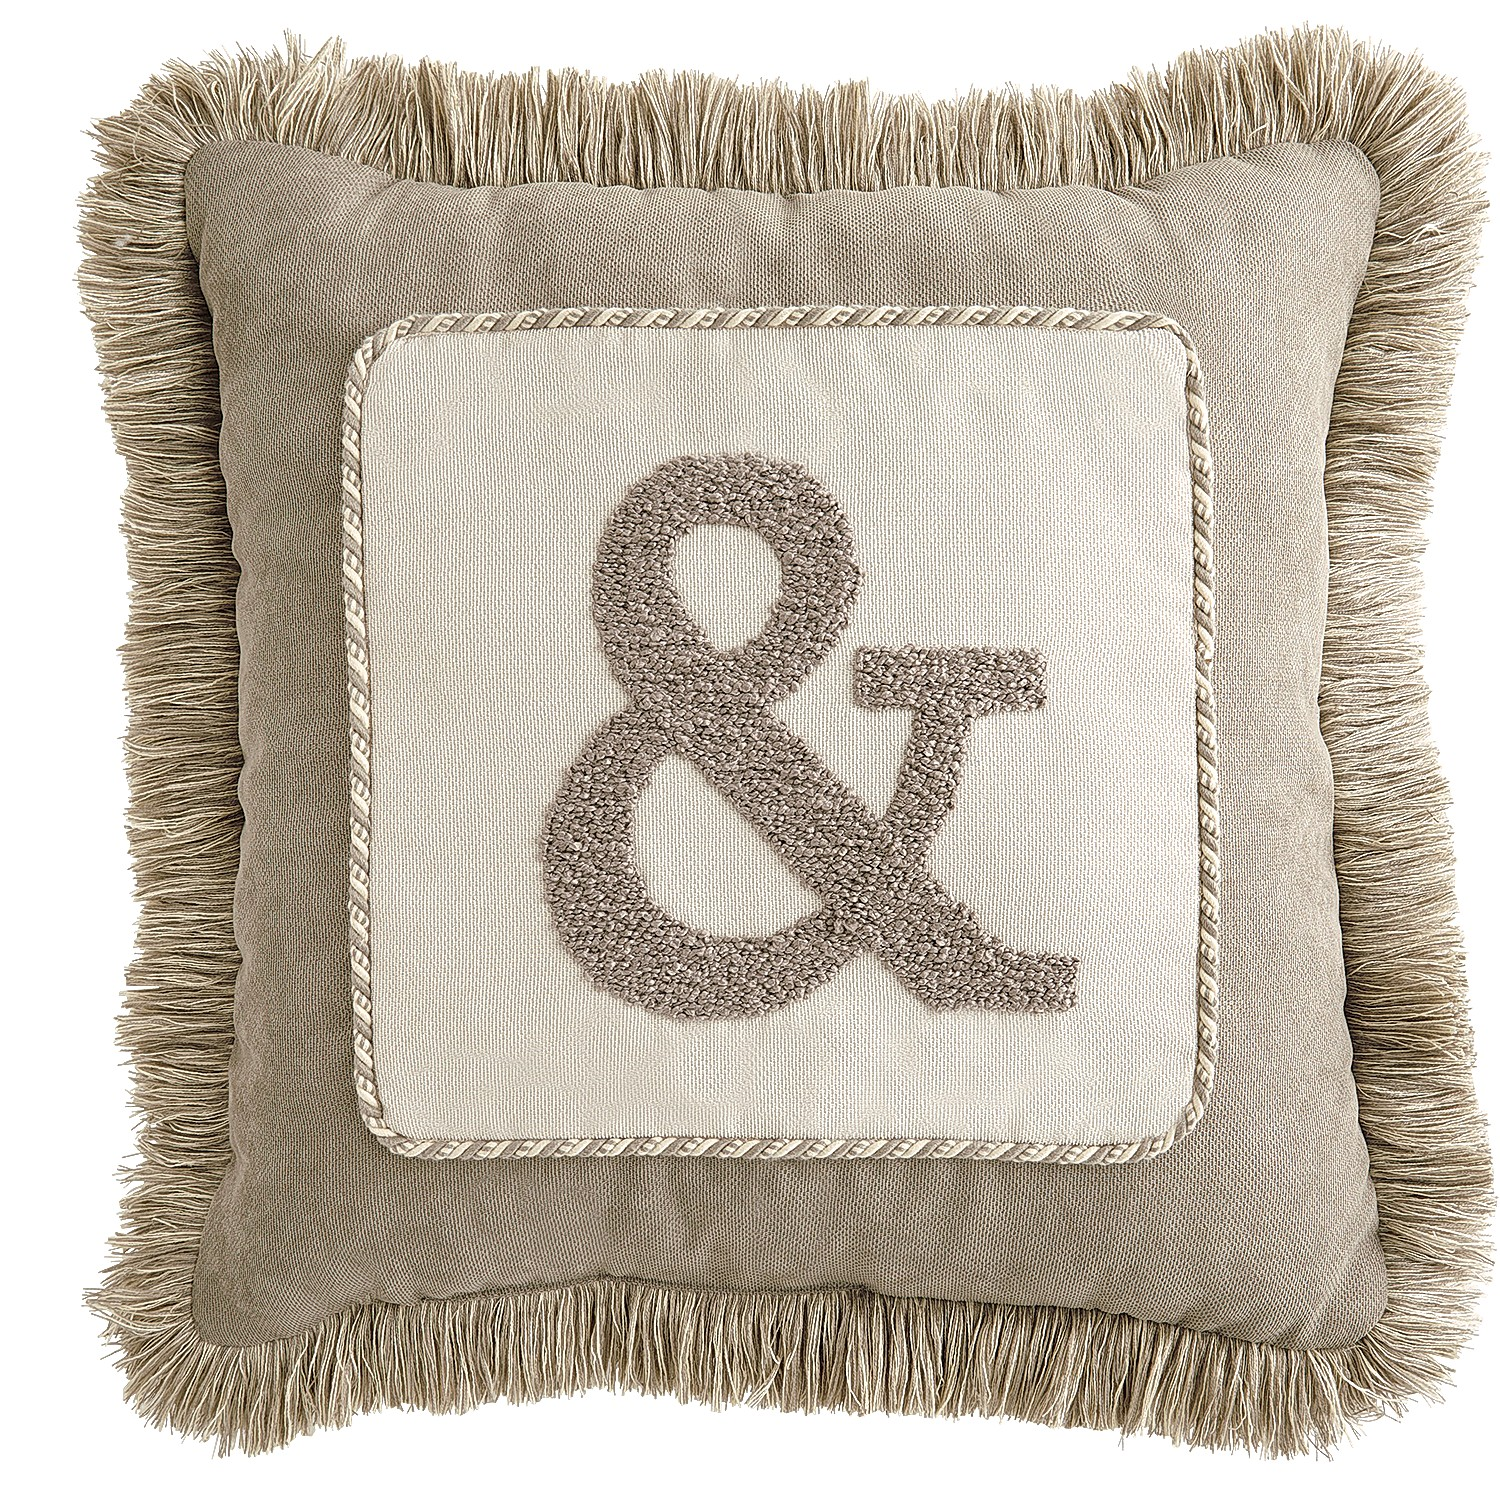 Calliope Monogram Pillow - Birch Ampersand